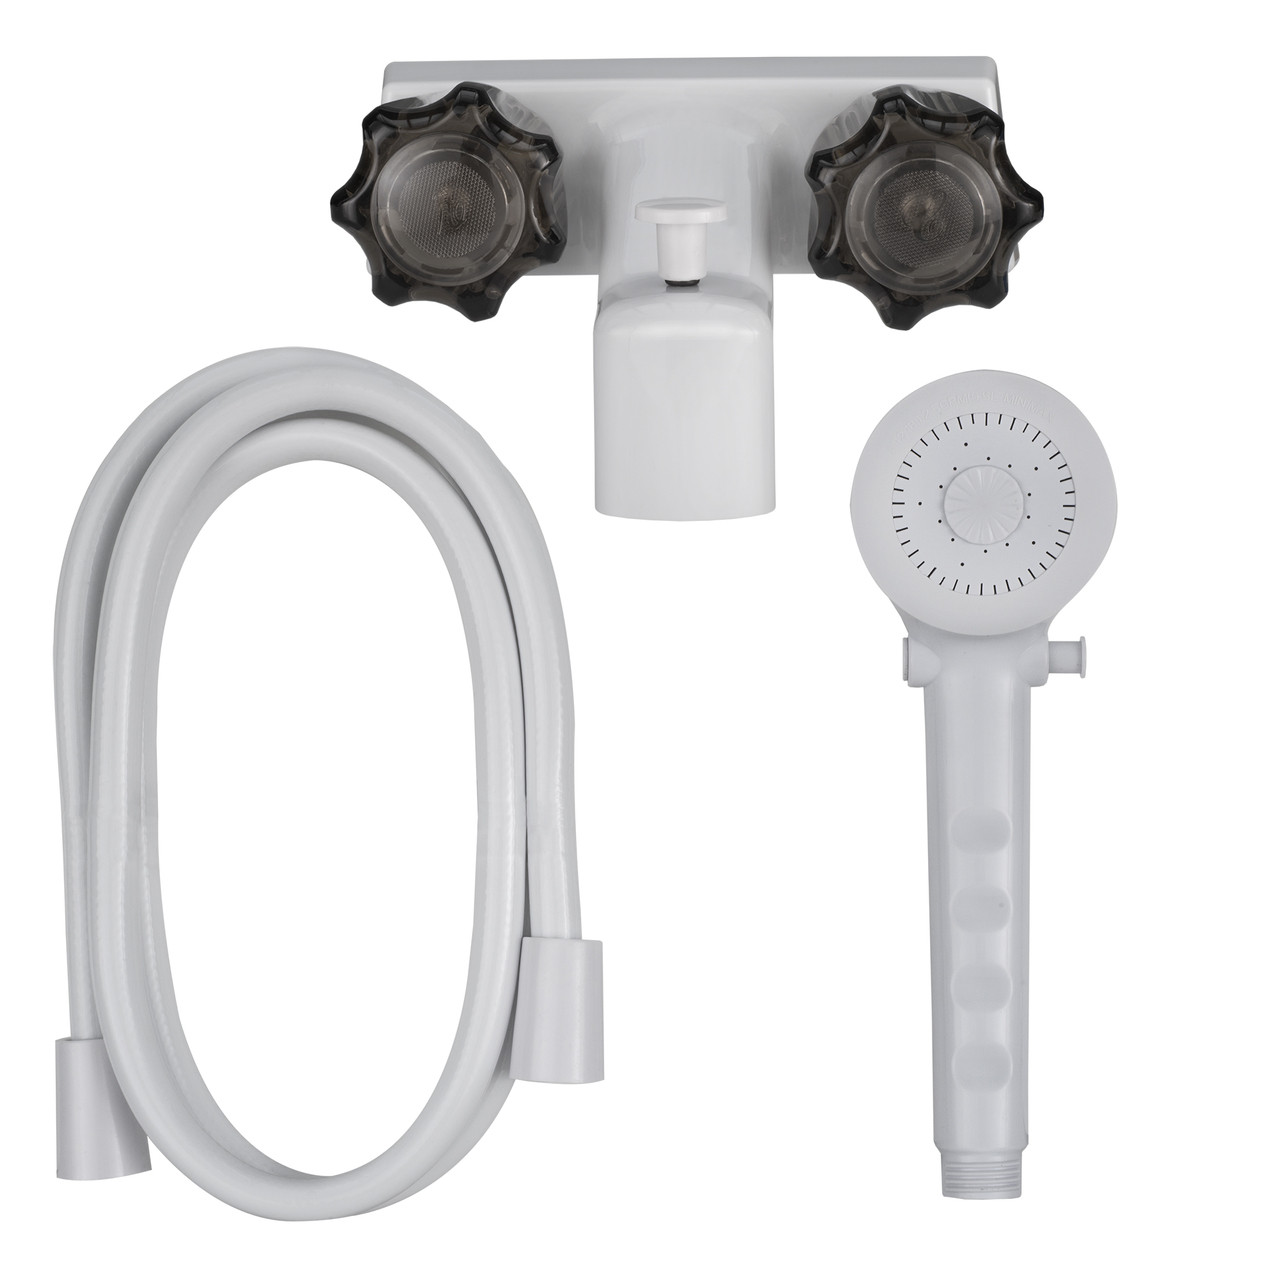 4 Rv Tub And Shower Diverter Faucet White Smoke With